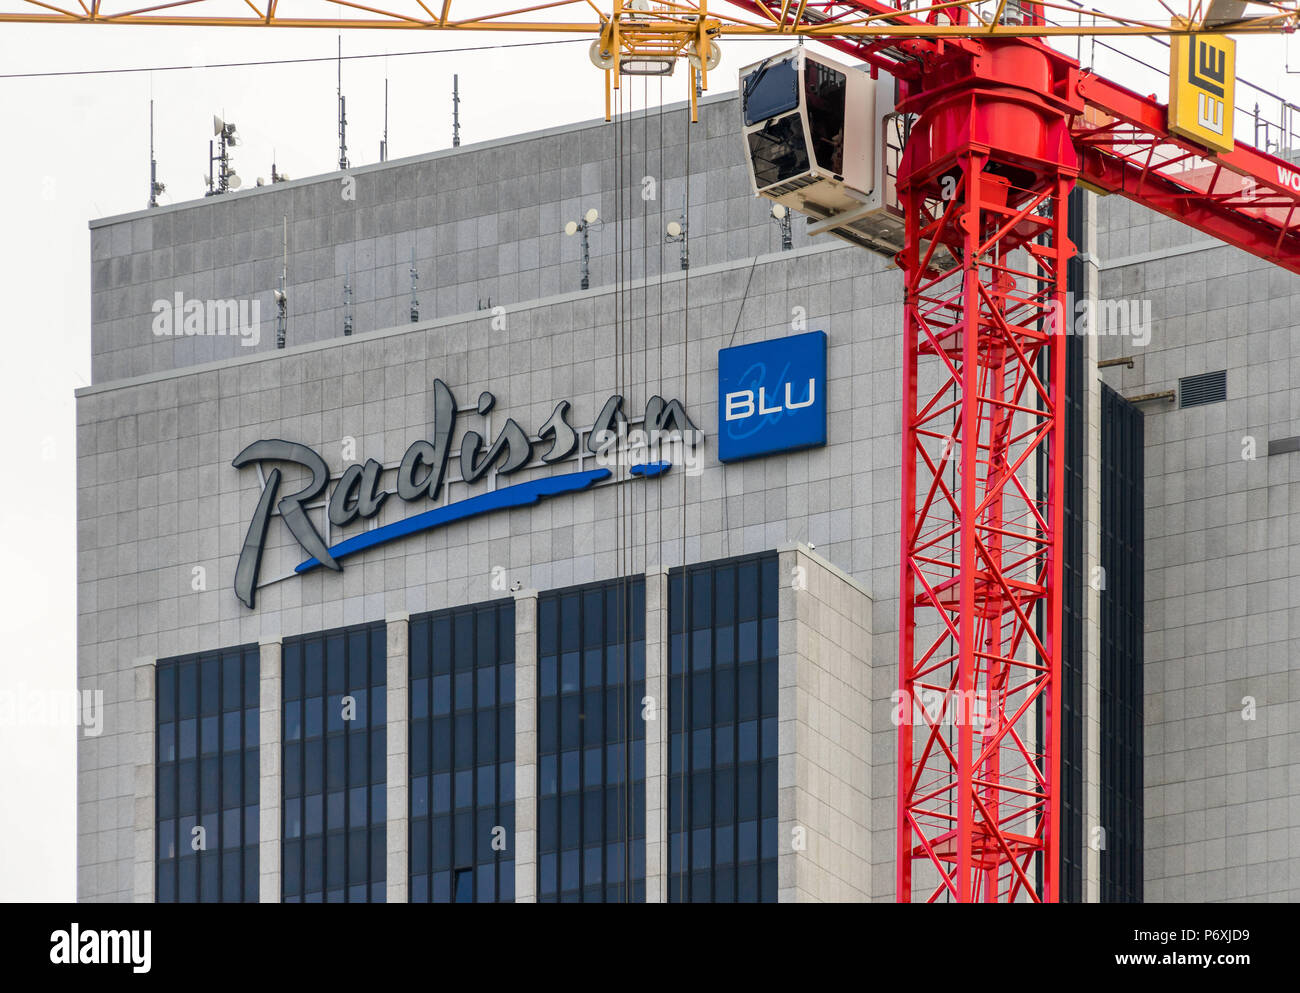 Main building of the Radisson Blu Hotel in Hamburg near the CCH with a construction crane of a construction site in the foreground - Stock Image